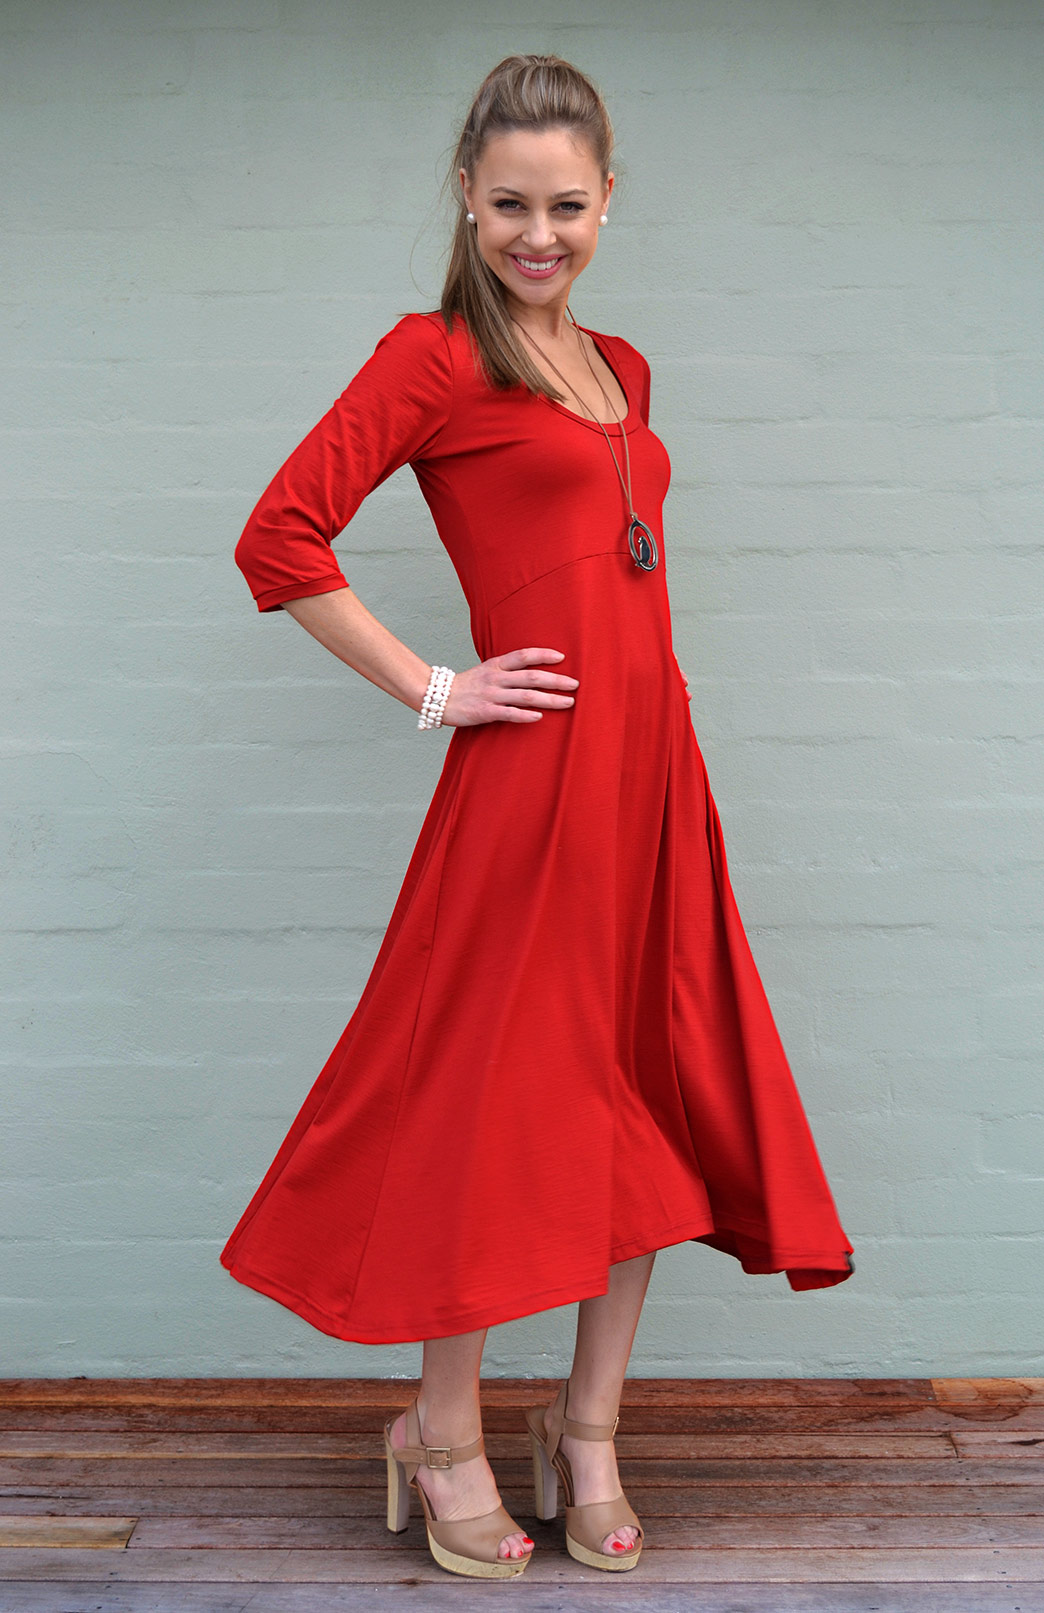 Milly Dress - Women's Flame Red Merino Wool Milly Dress with Curved Hem - Smitten Merino Tasmania Australia